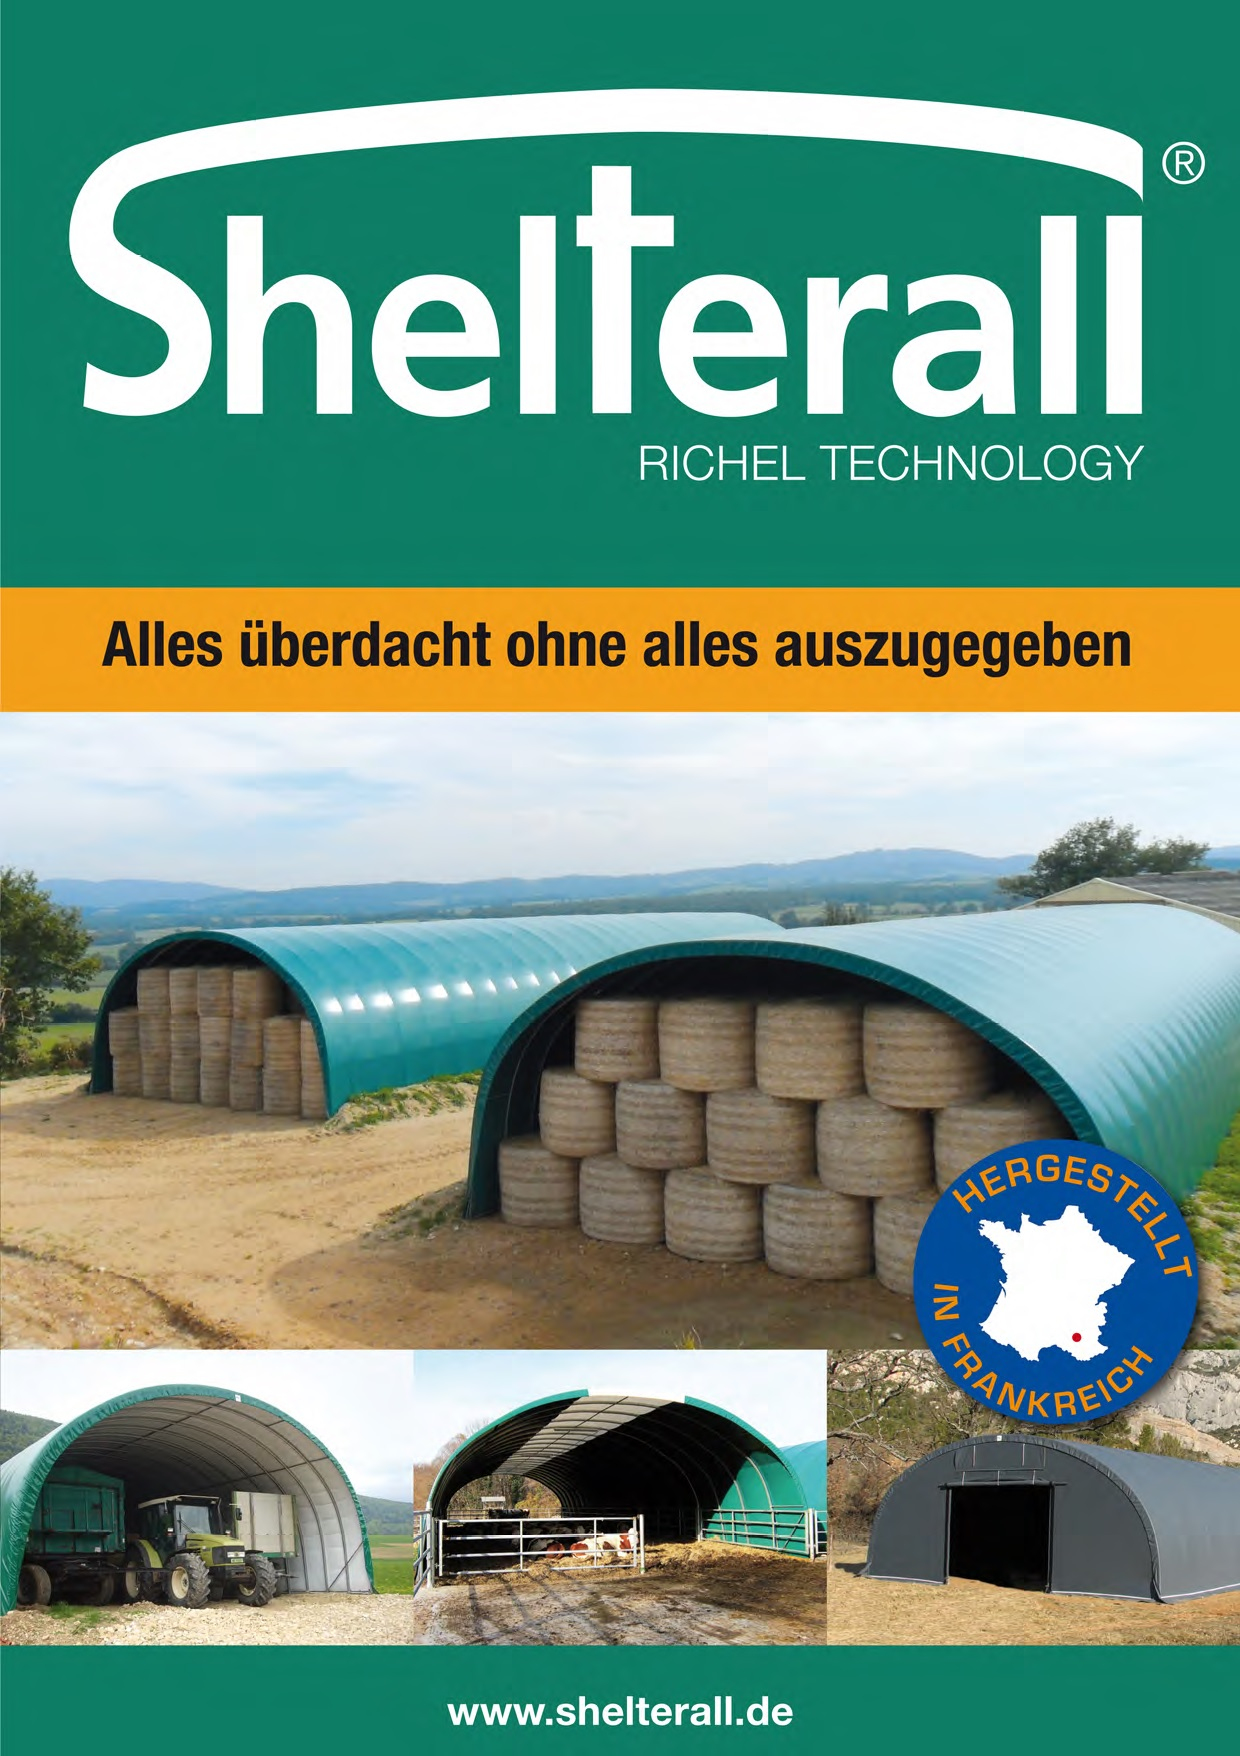 Shelterall